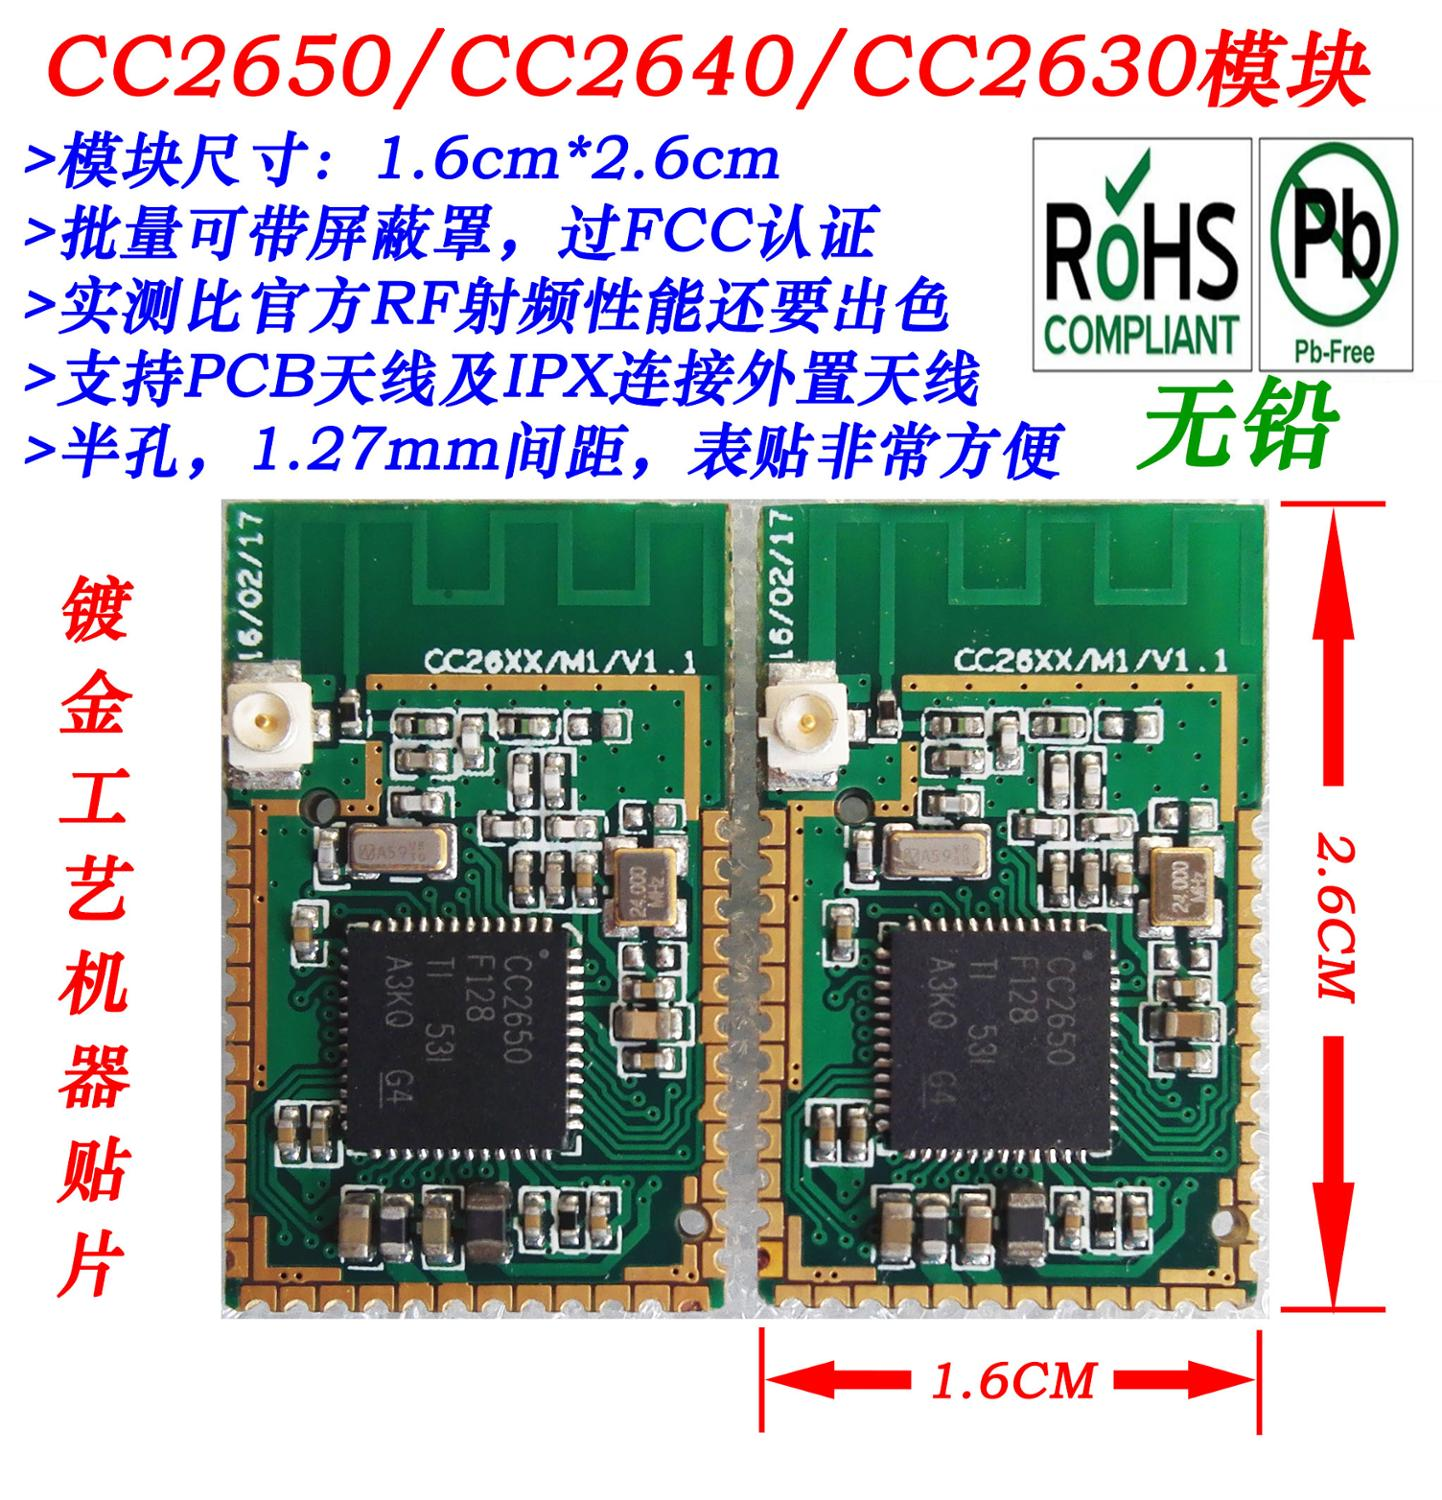 CC2640 CC2630 CC2650 Bluetooth module, ZigBee module,-in FM Transmitters  from Automobiles & Motorcycles on Aliexpress.com | Alibaba Group